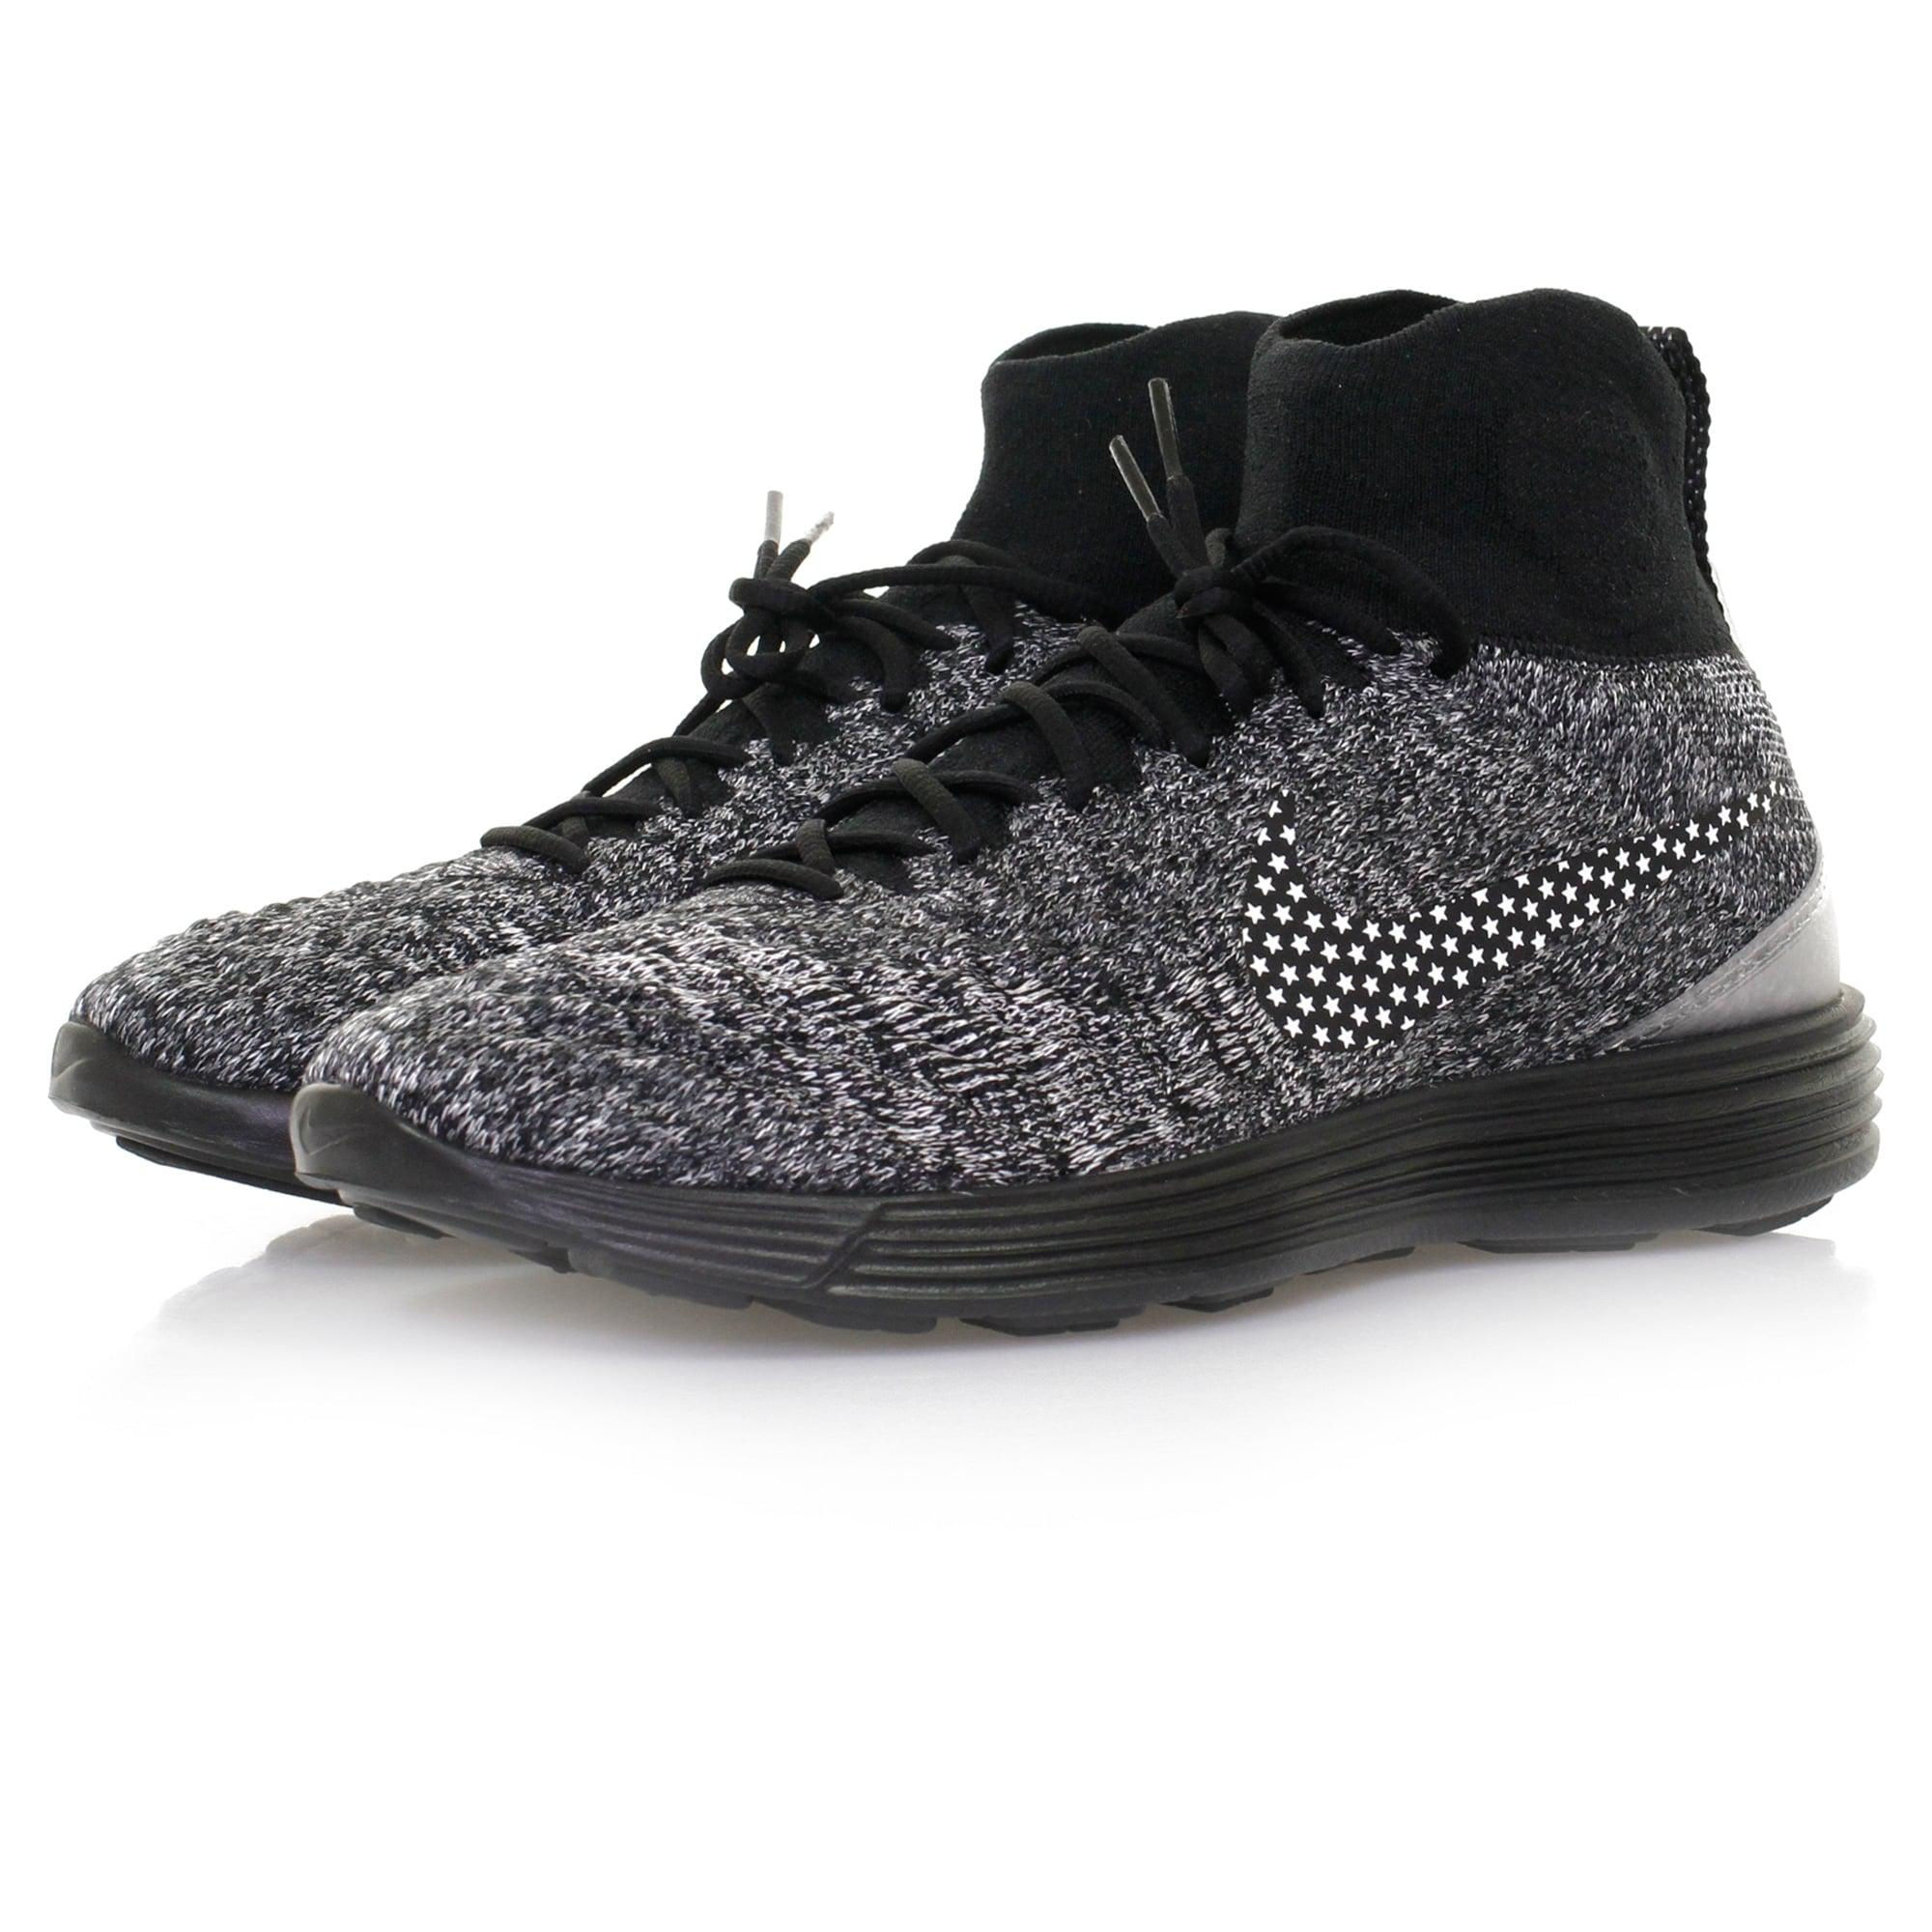 9ae643136906 Lyst - Nike Lunar Magista Ii Fk Fc Black Shoe 876385 in Black for Men